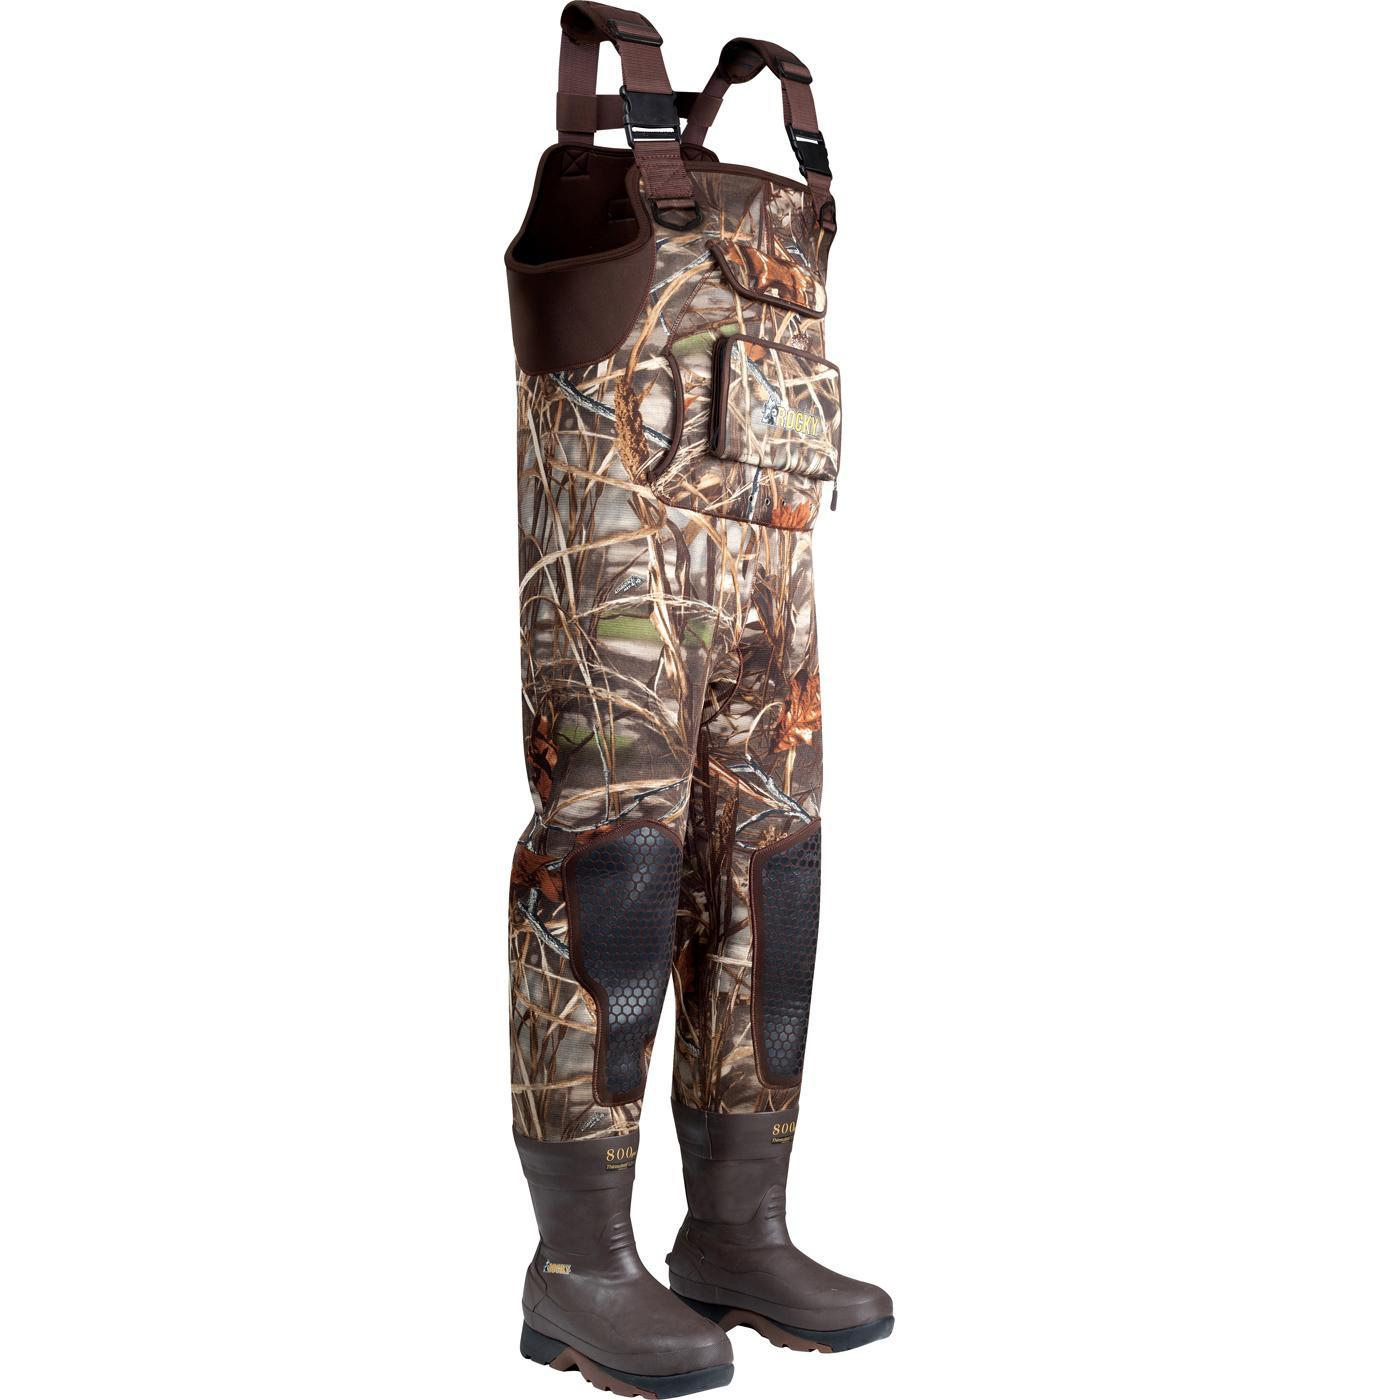 Hip Waders For Toddlers